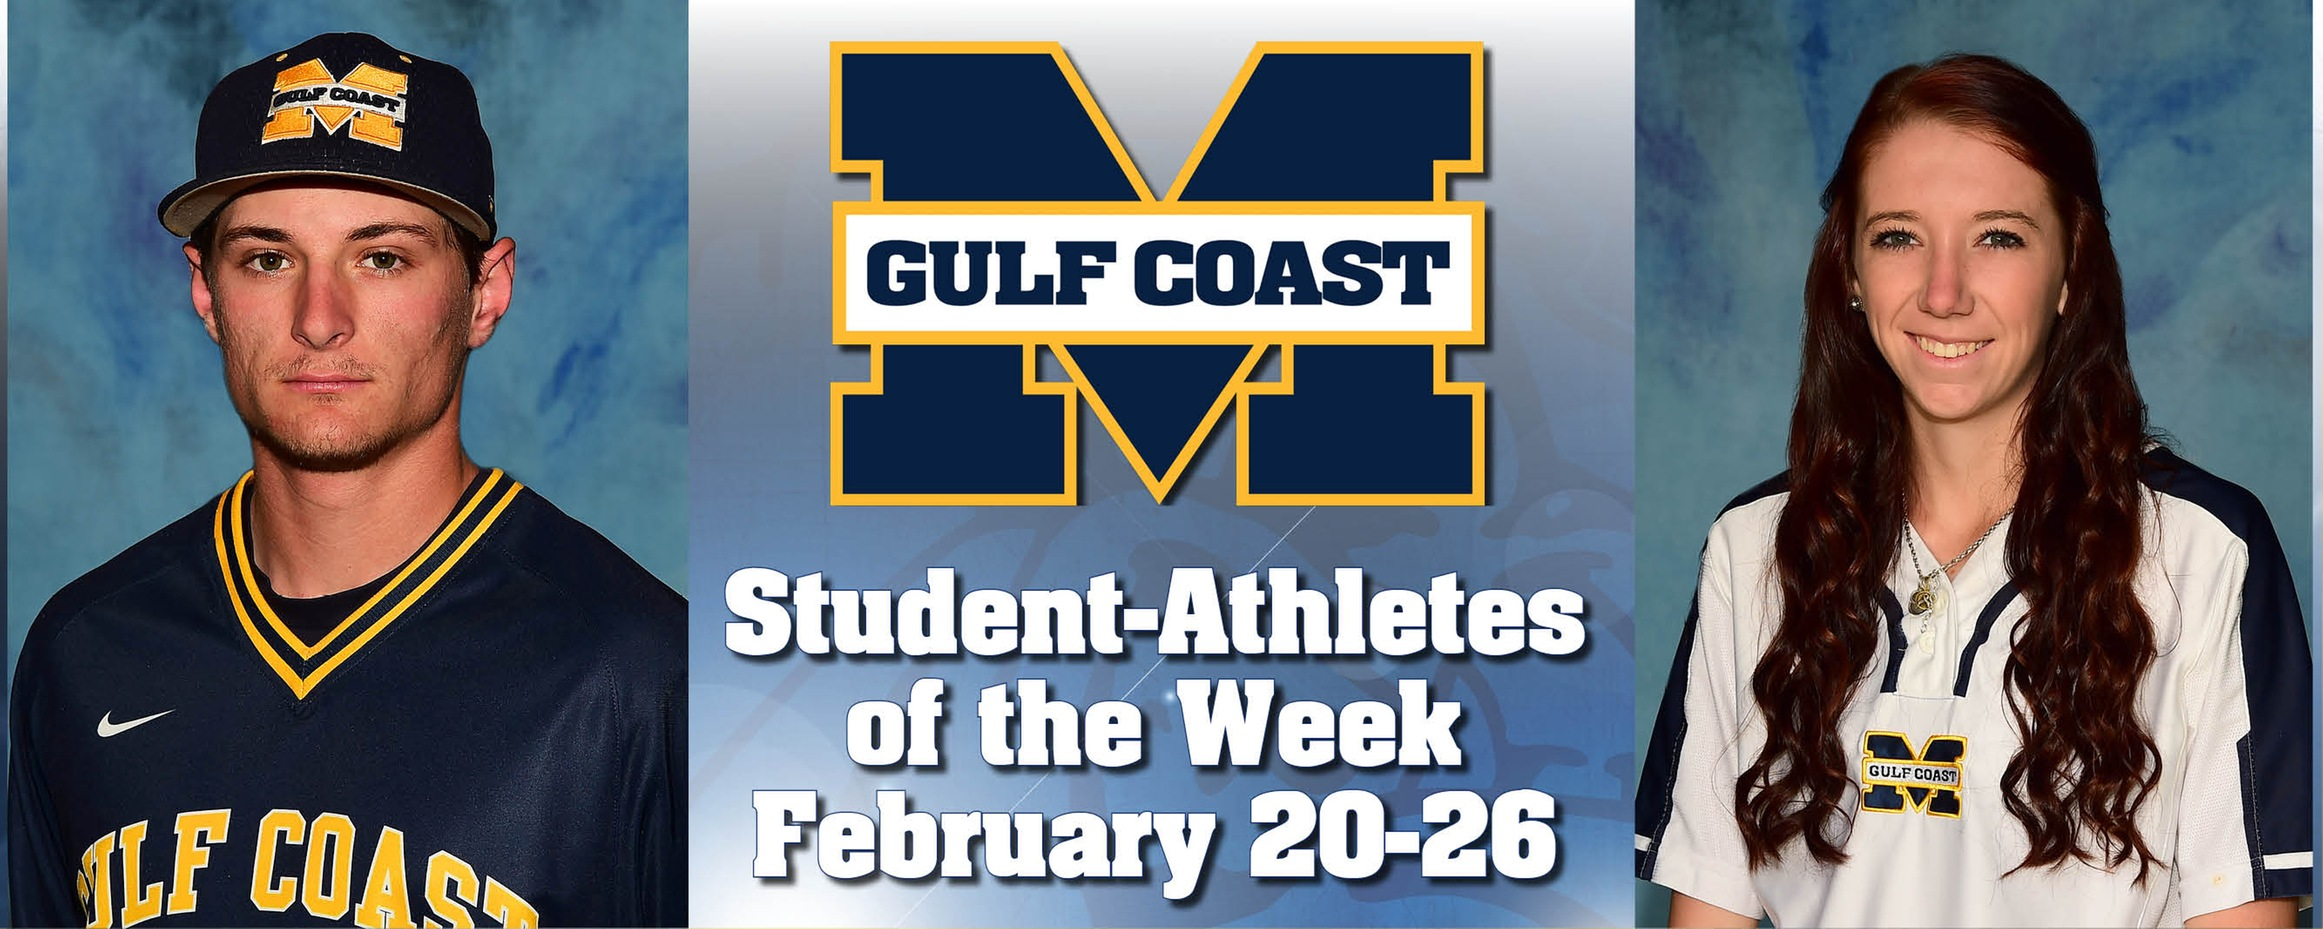 Sexton, Rhodes named MGCCC Student-Athletes of the Week